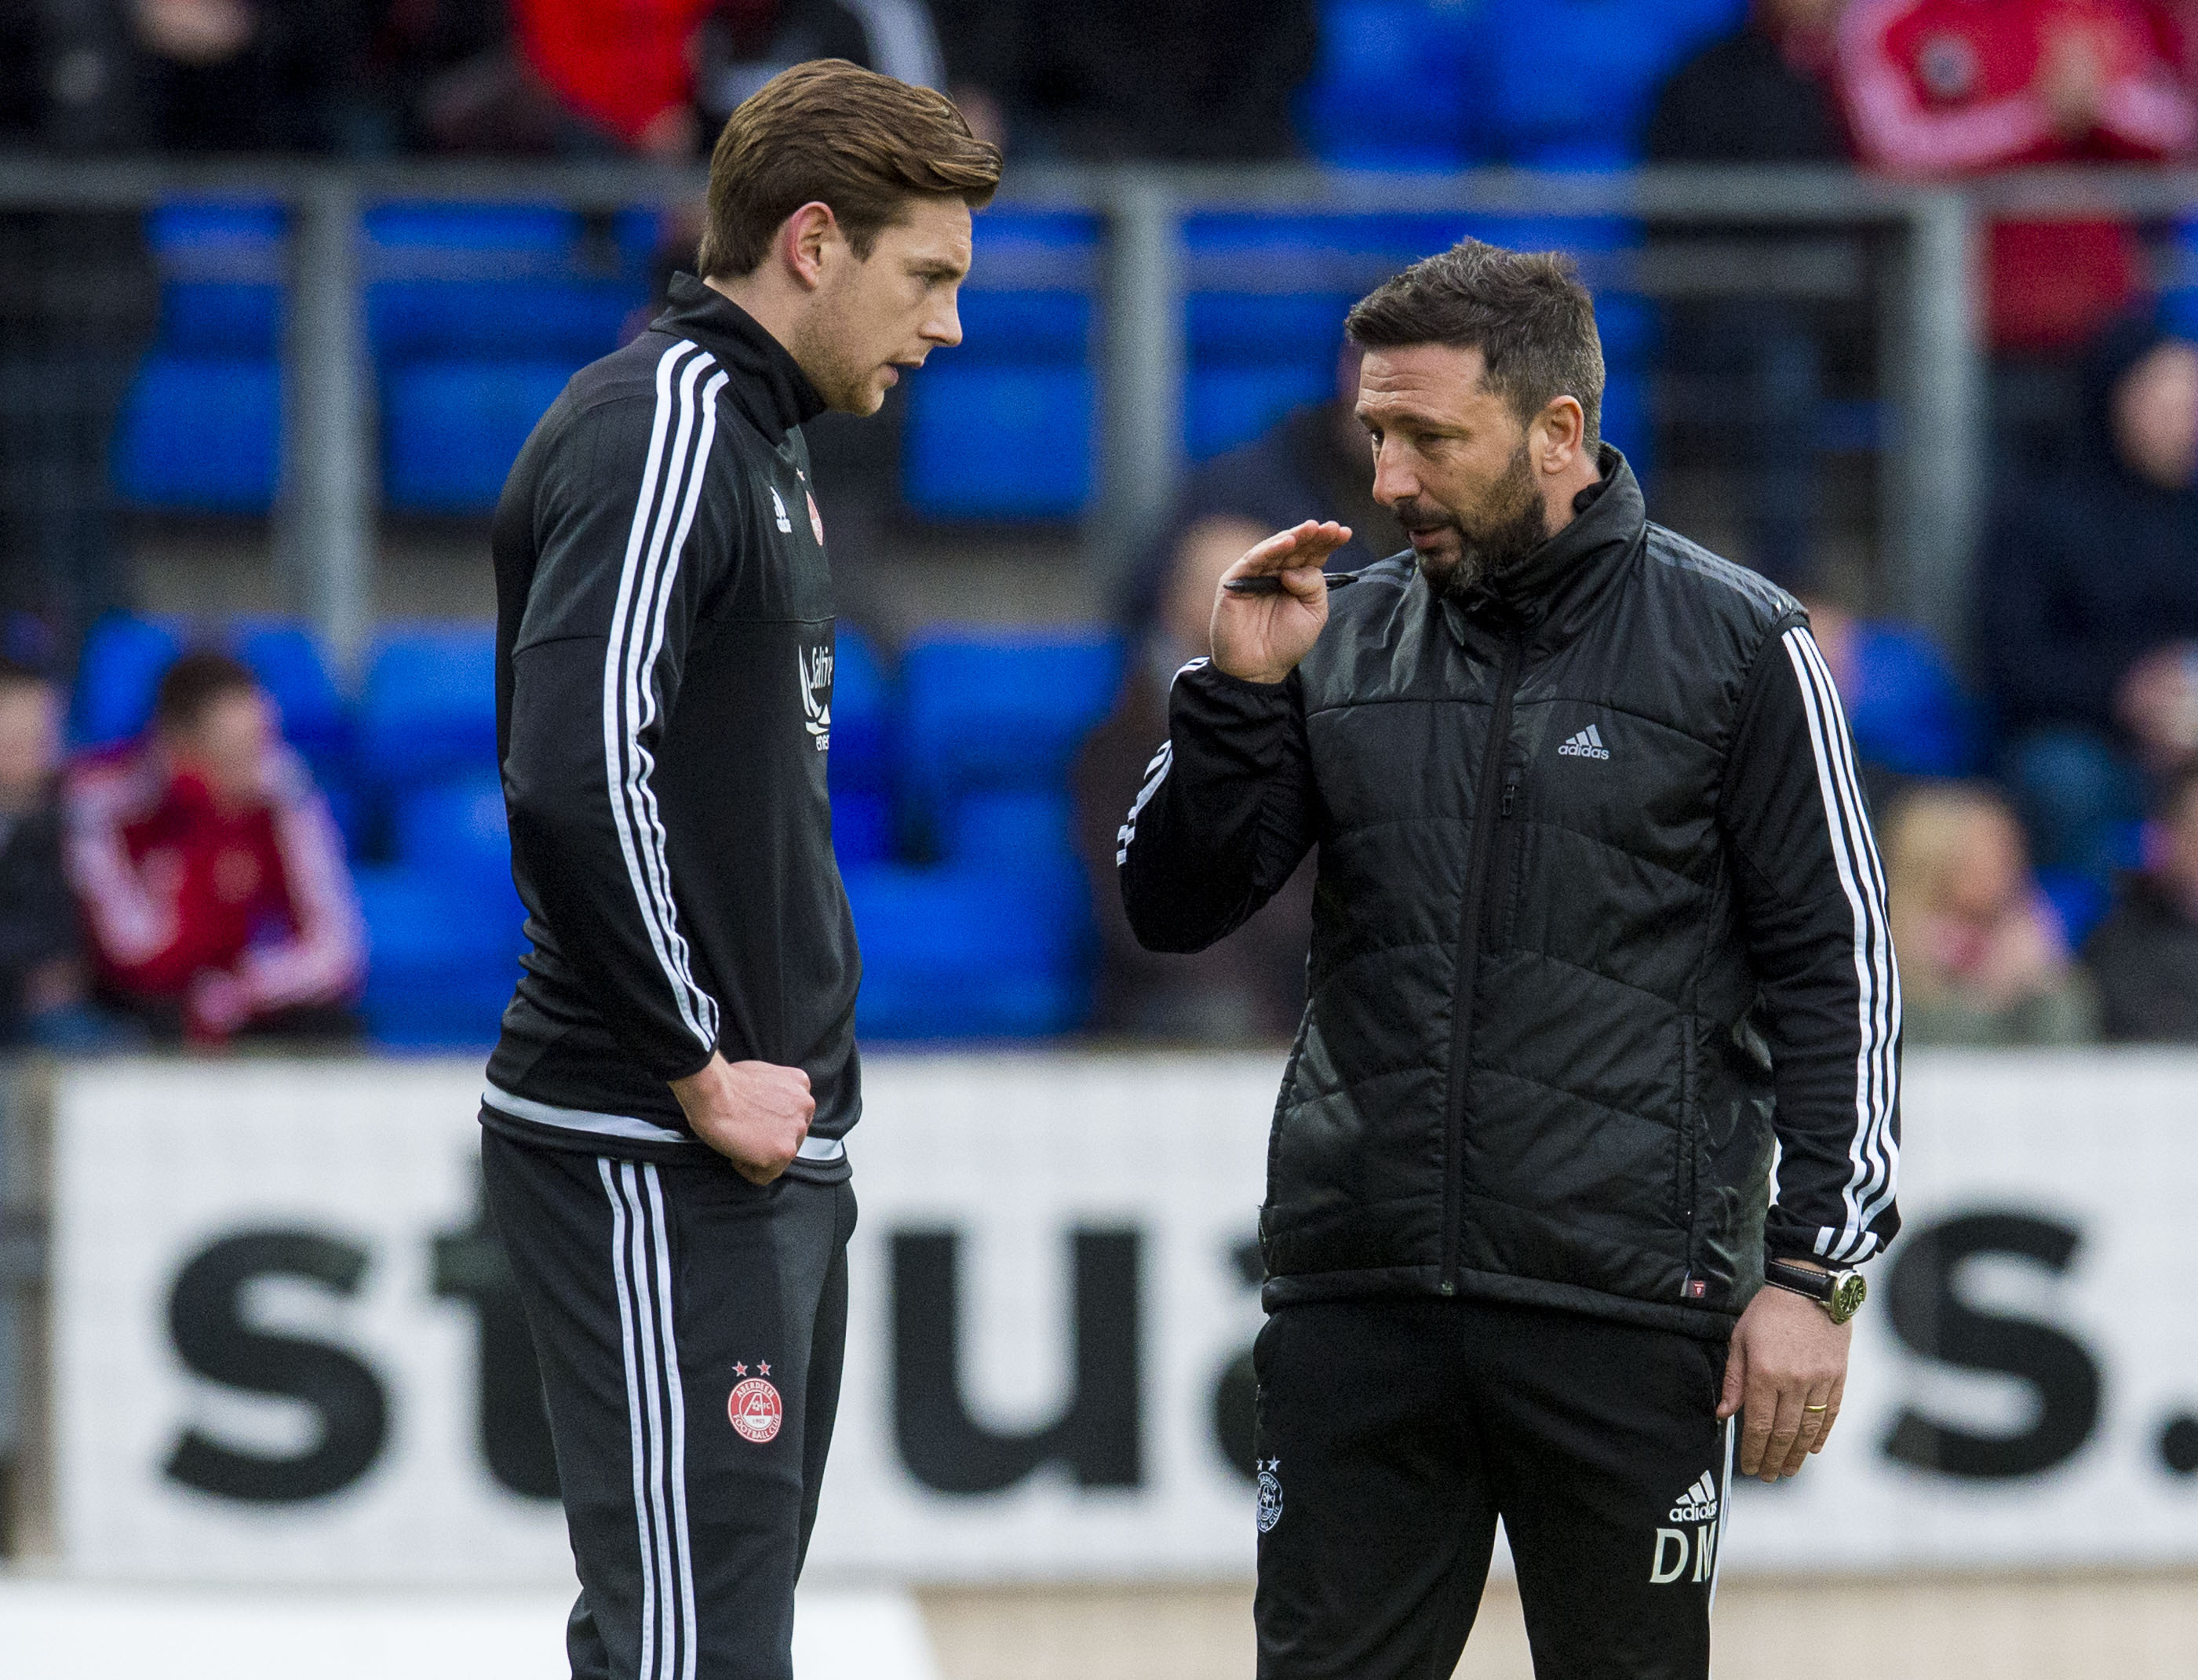 Former Dons defender Ash Taylor remembers Derek McInnes' message to the players after last year's Scottish Cup heartache.